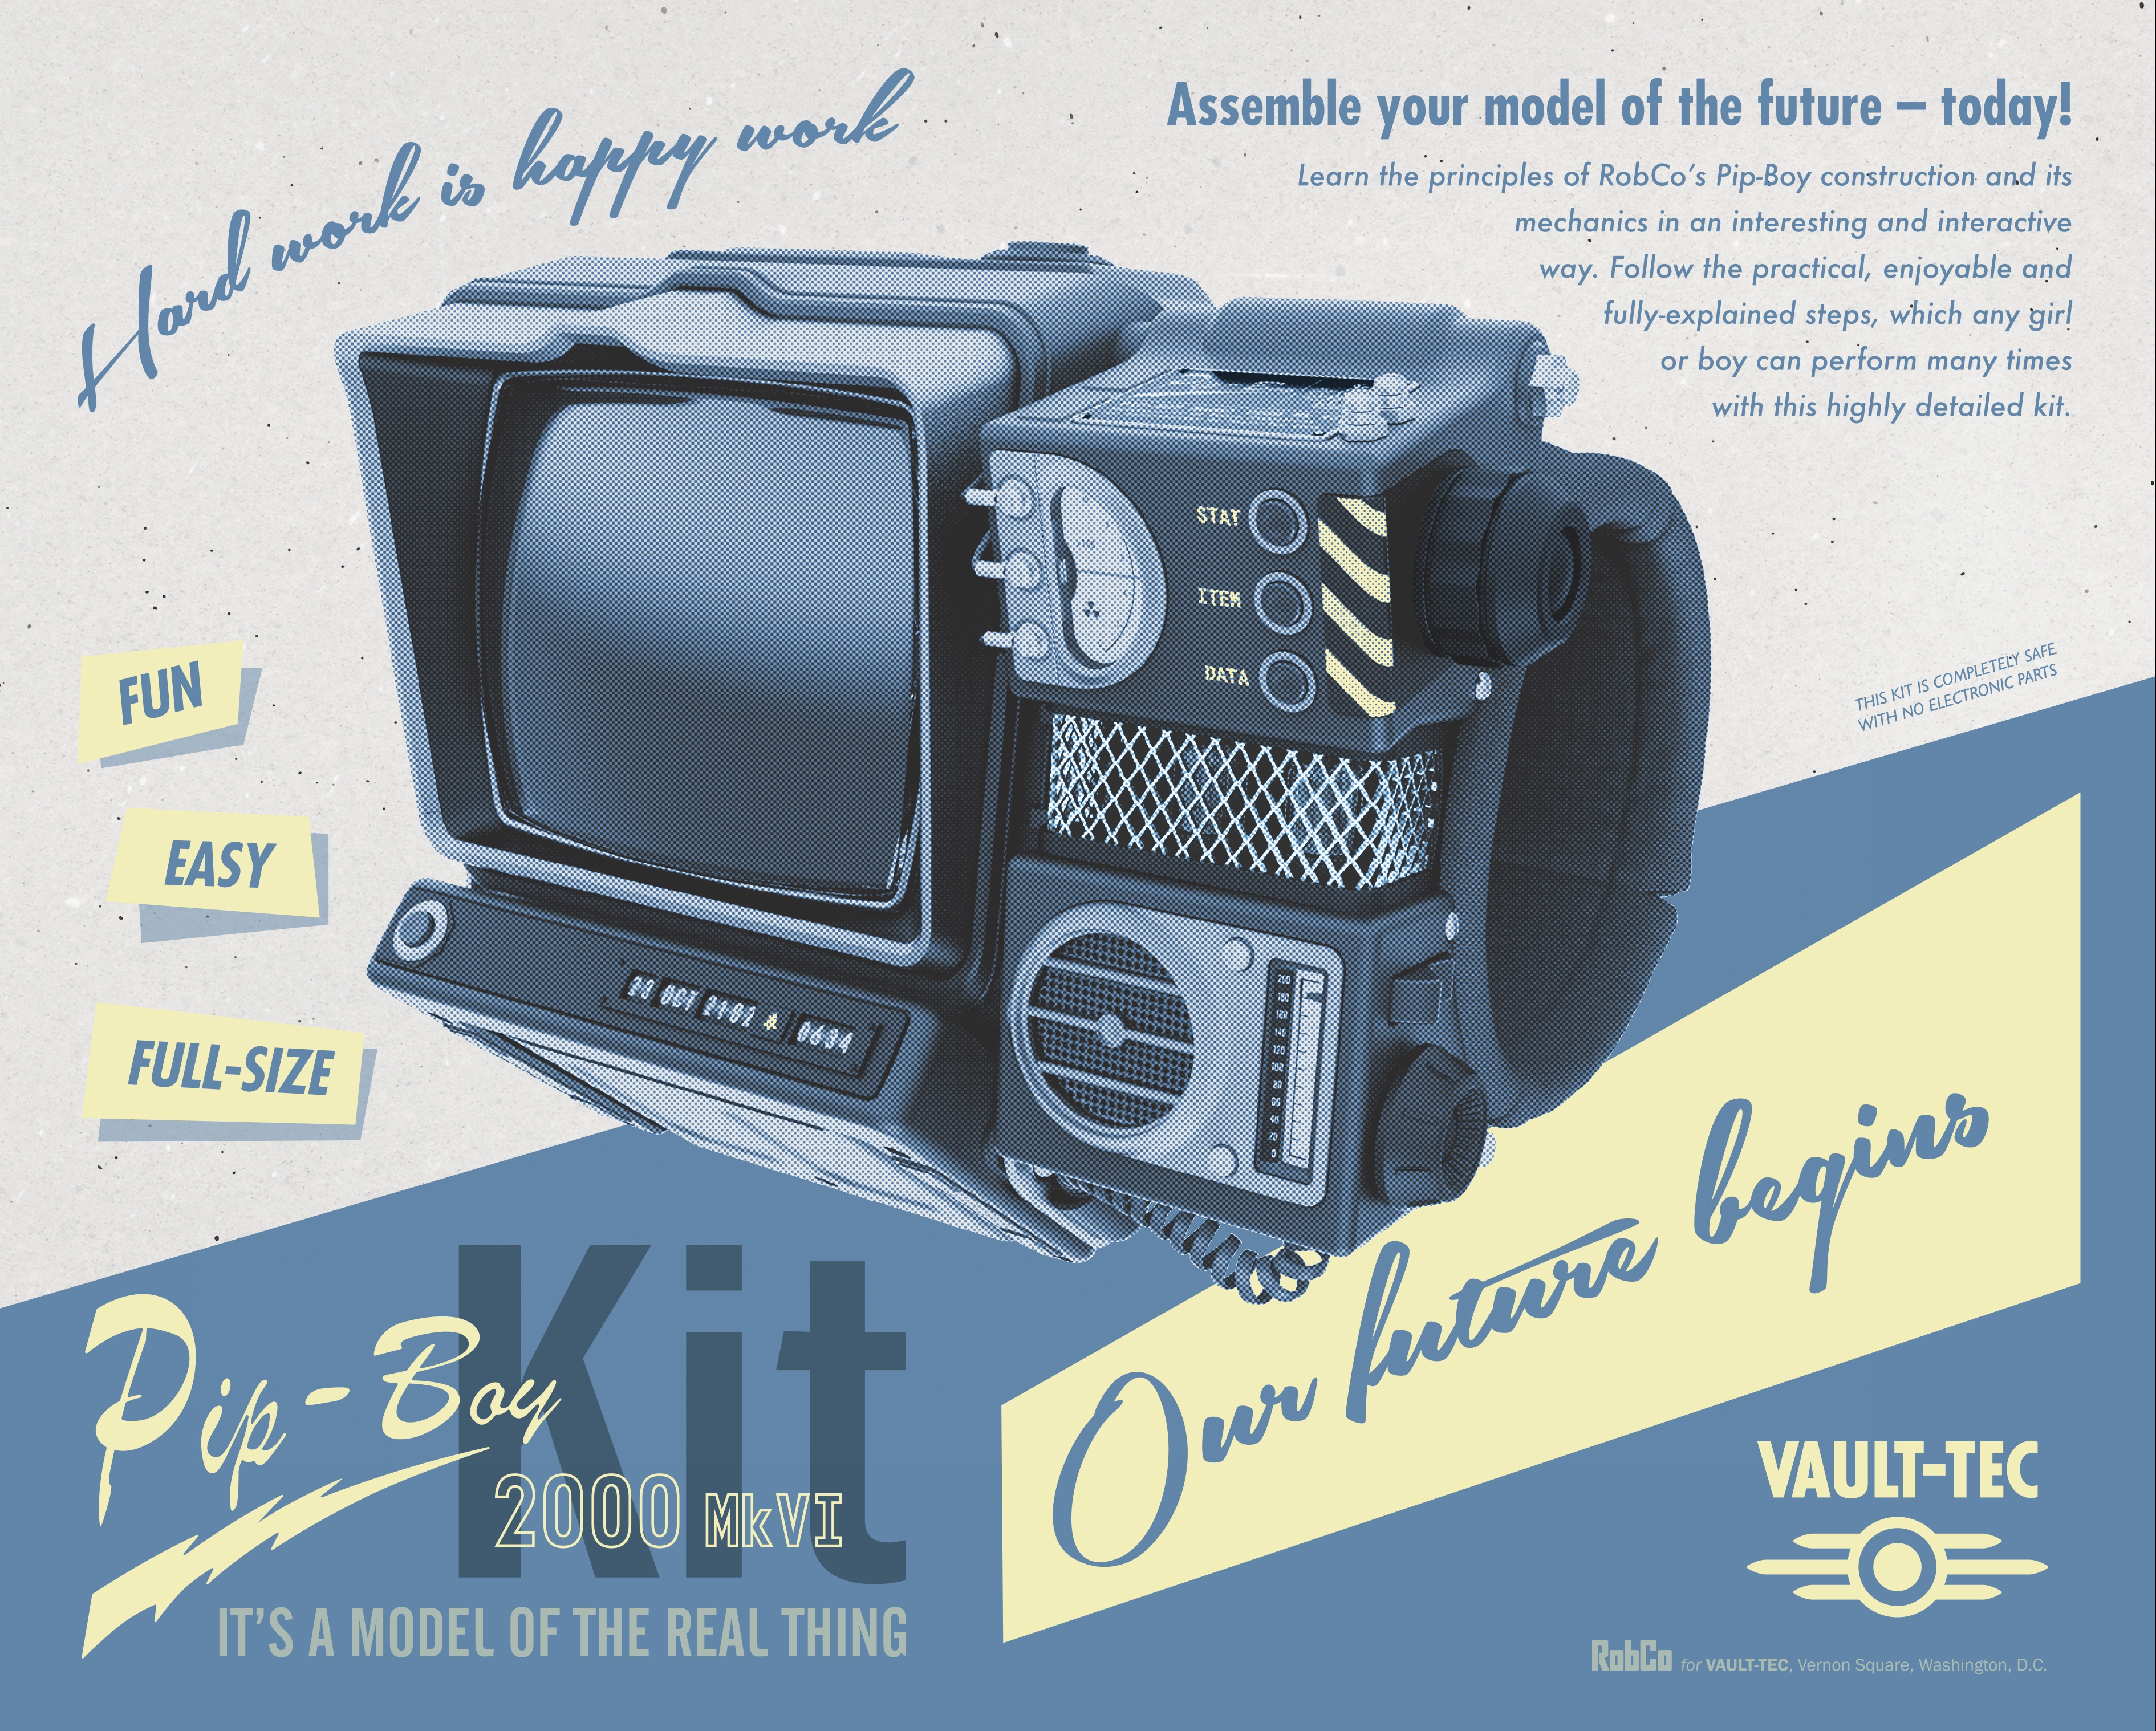 Build your own Pip-Boy with Fallout 76's special edition